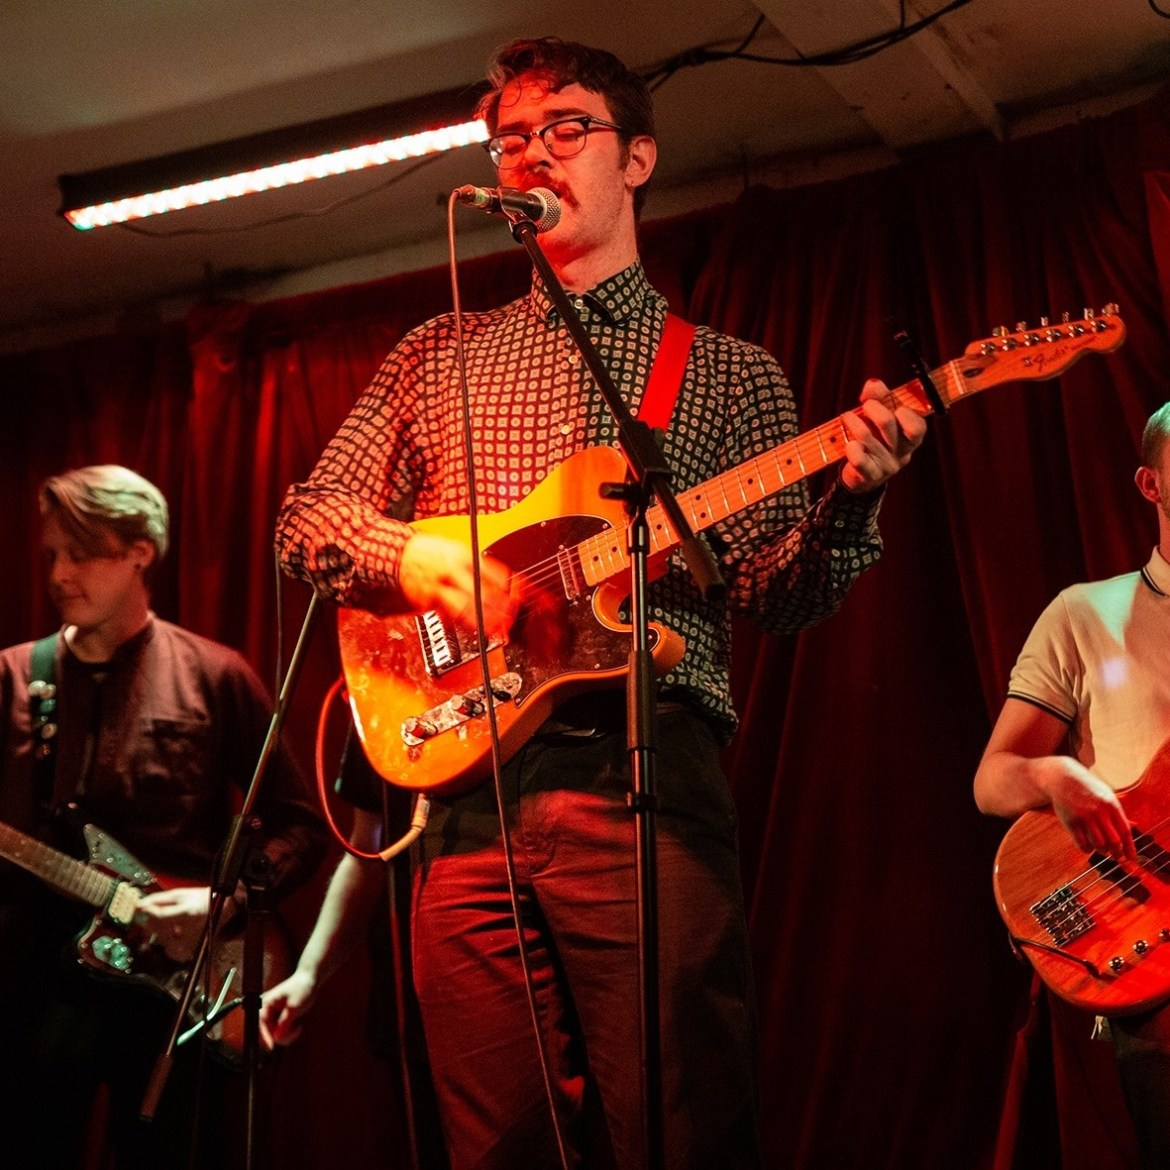 IN CONVERSATION: Crying Swells talk to John Clay about 'Lungs'